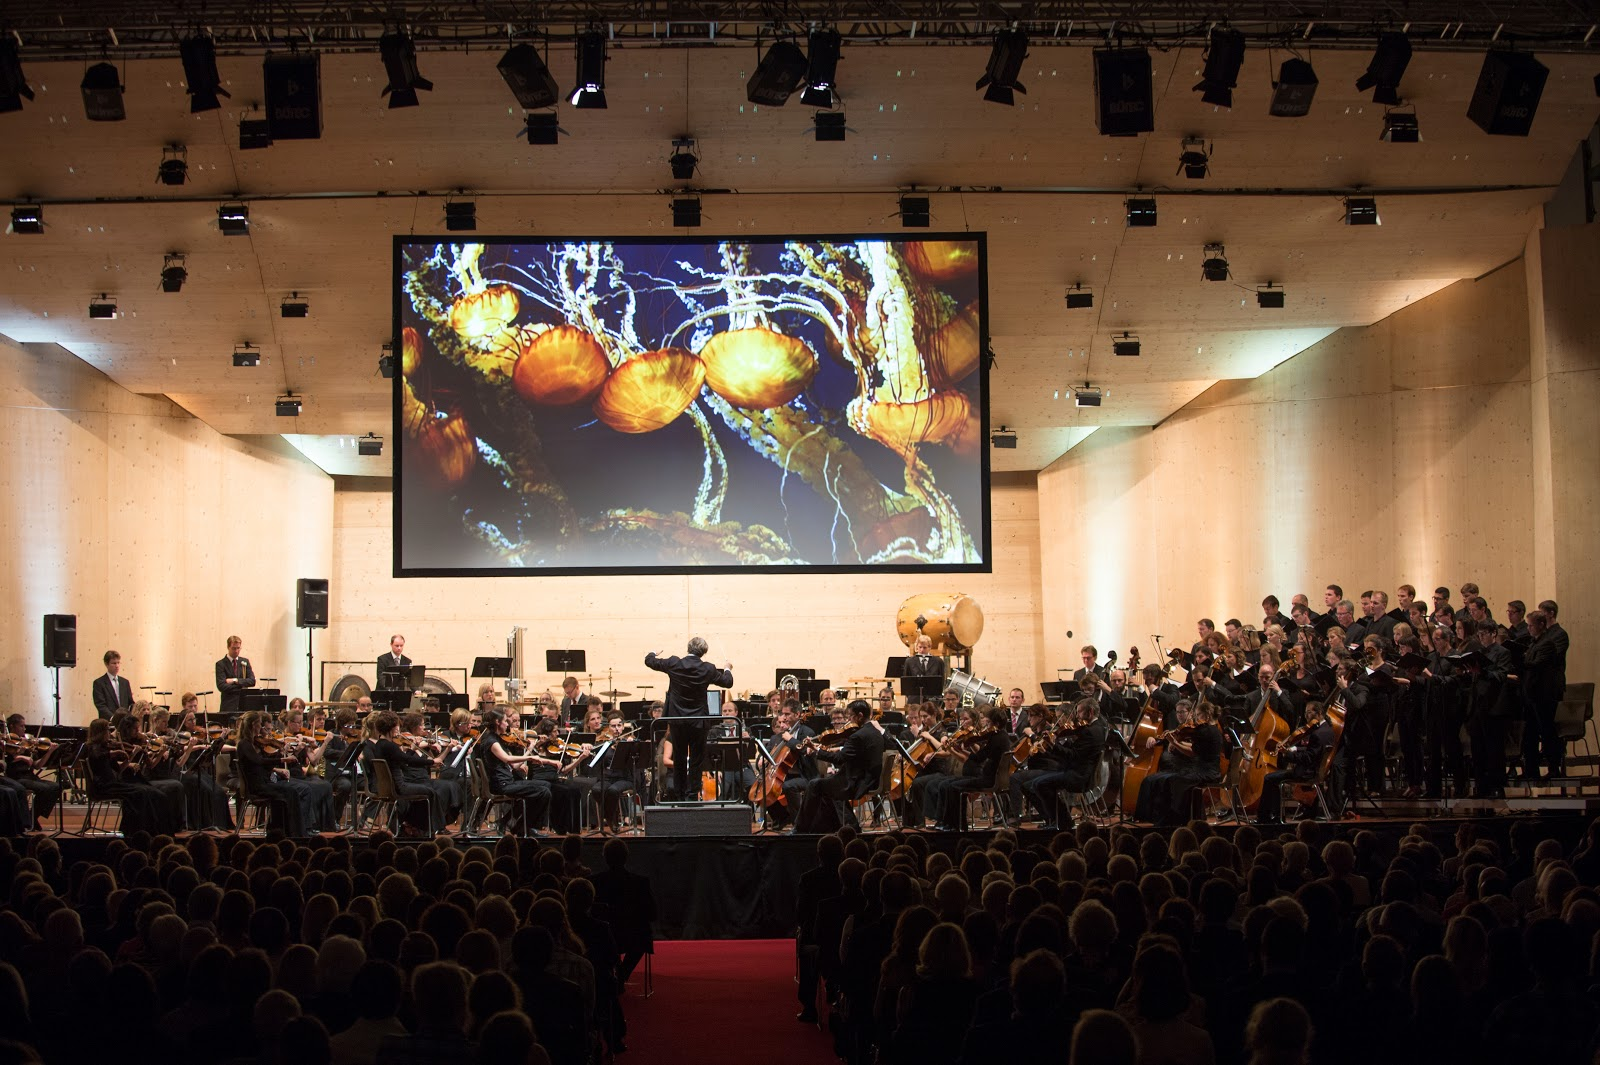 21st Century Symphony Orchestra mit Ludwig Wicki. Photo: Gstaad Menuhin Festival & Academy.